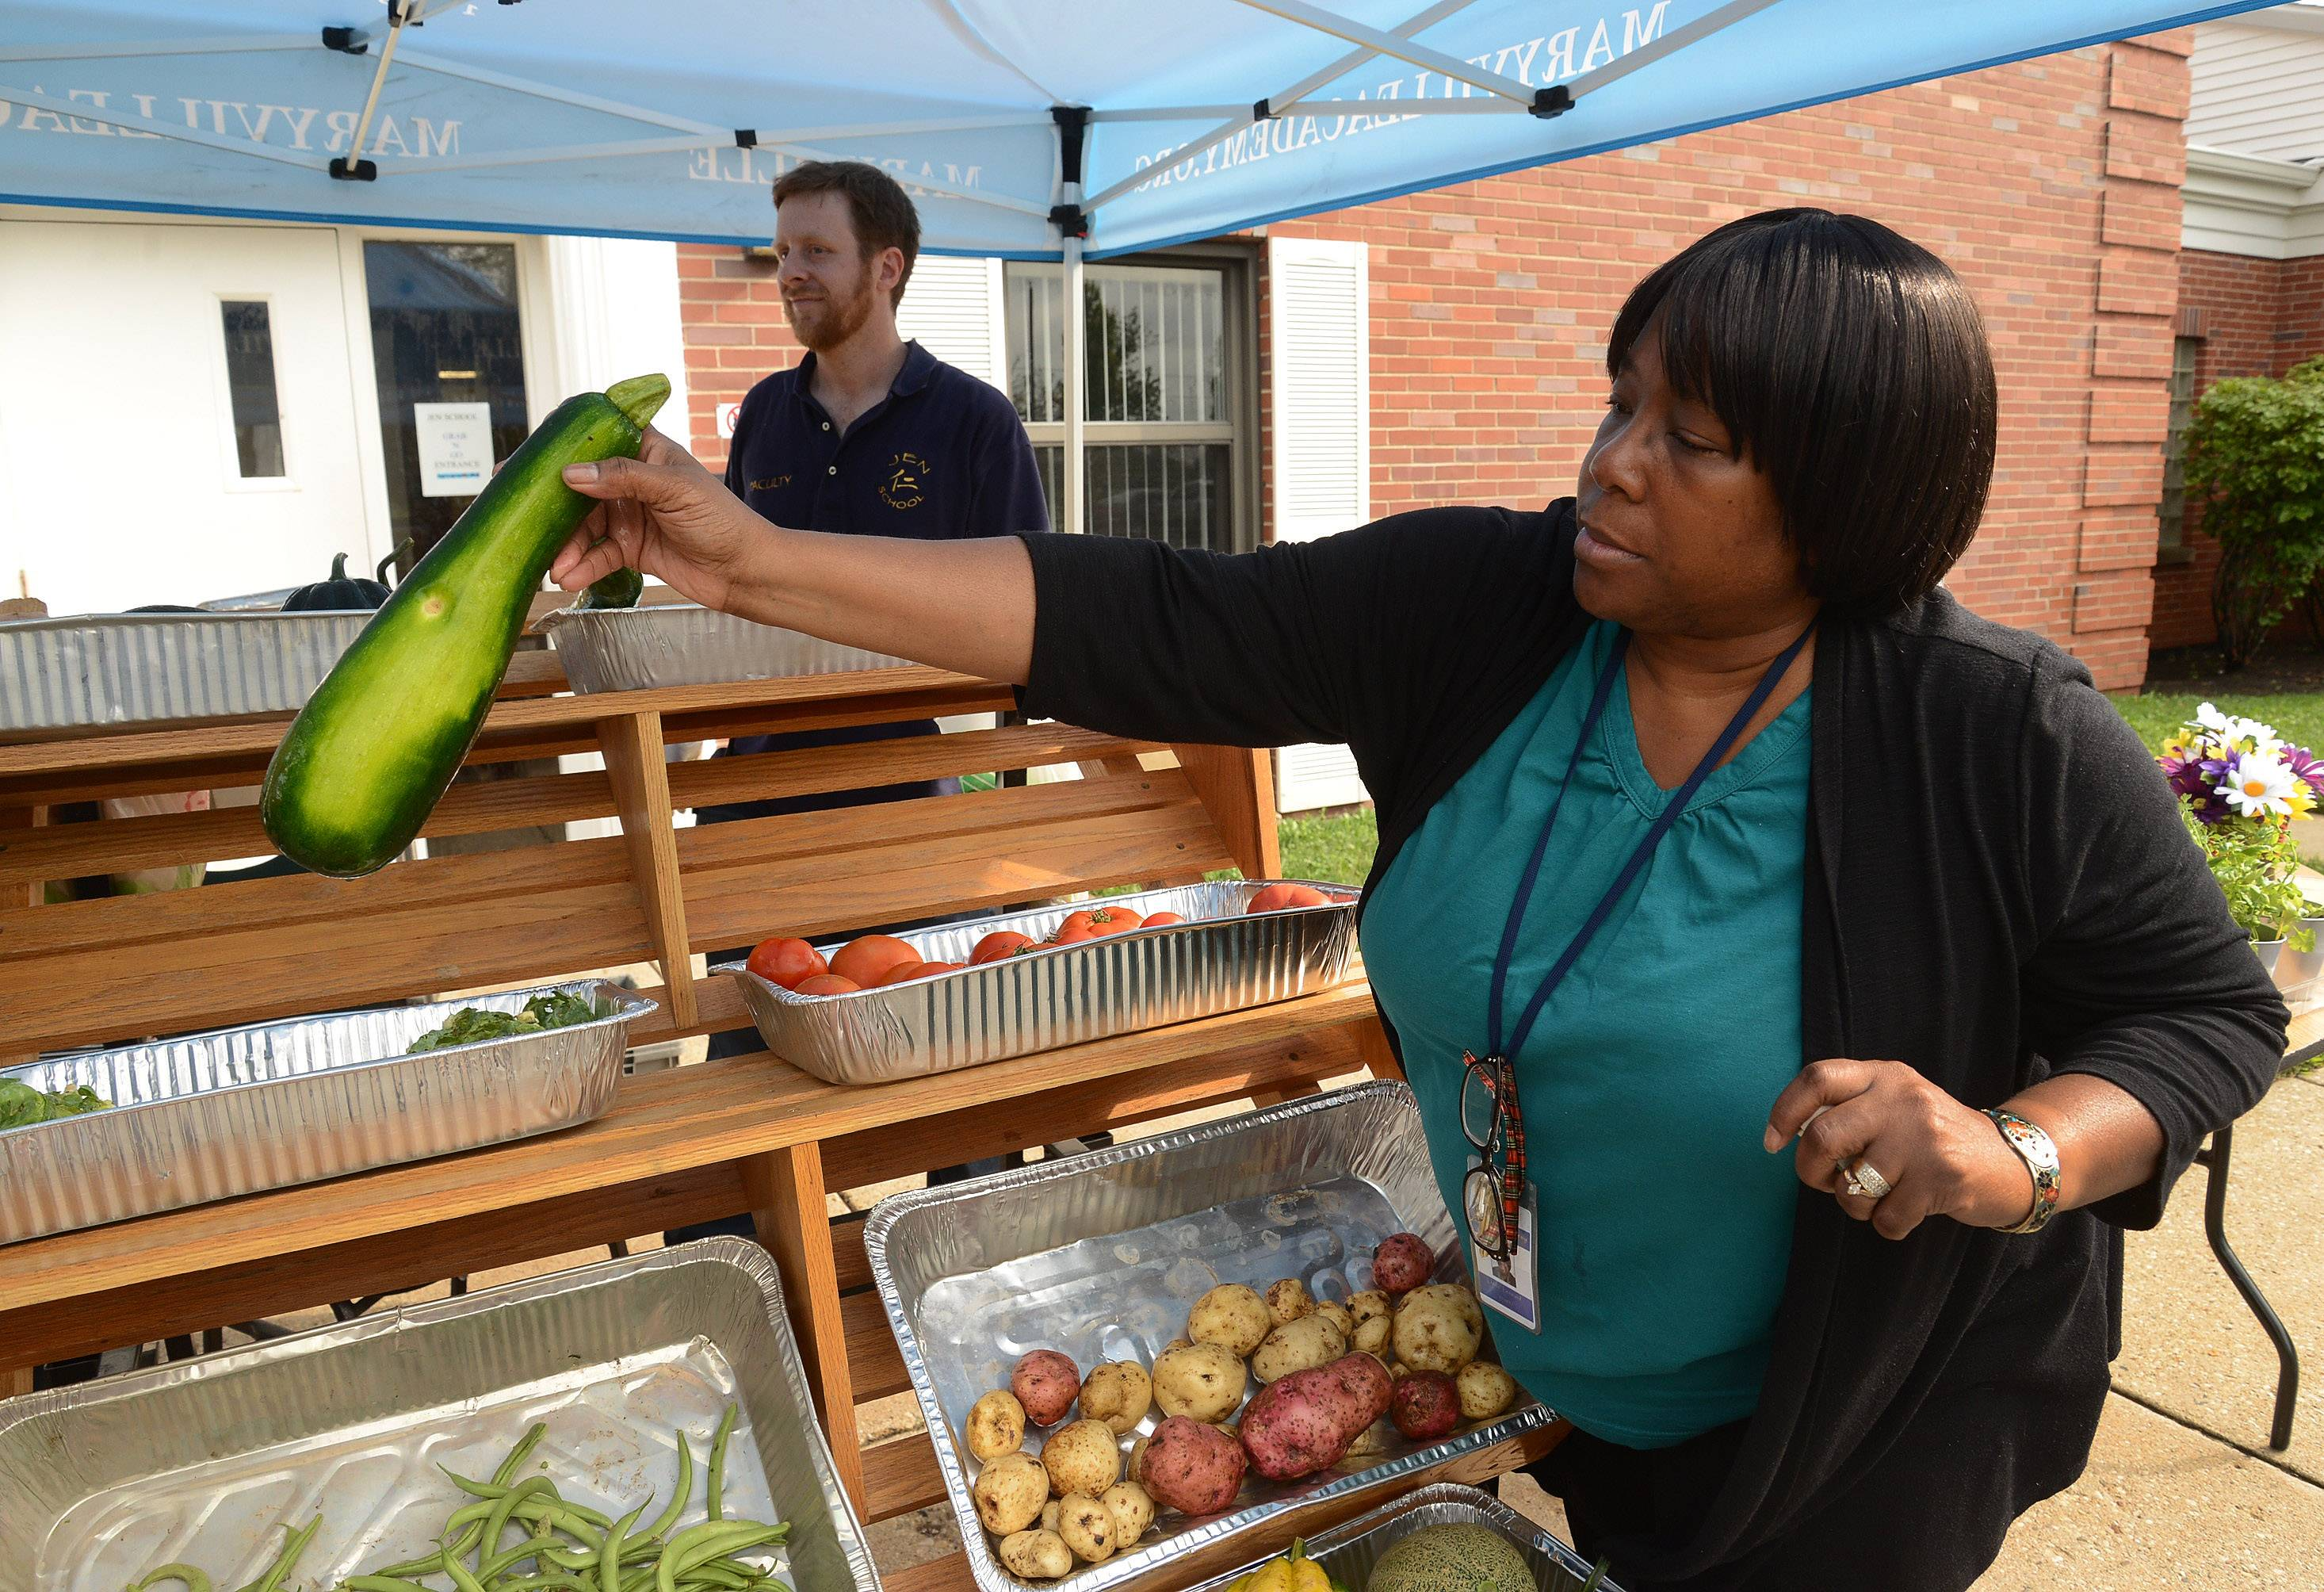 Maryville staff member Linda Leonard buys some zucchini from students selling their own homegrown produce at Maryville Academy.